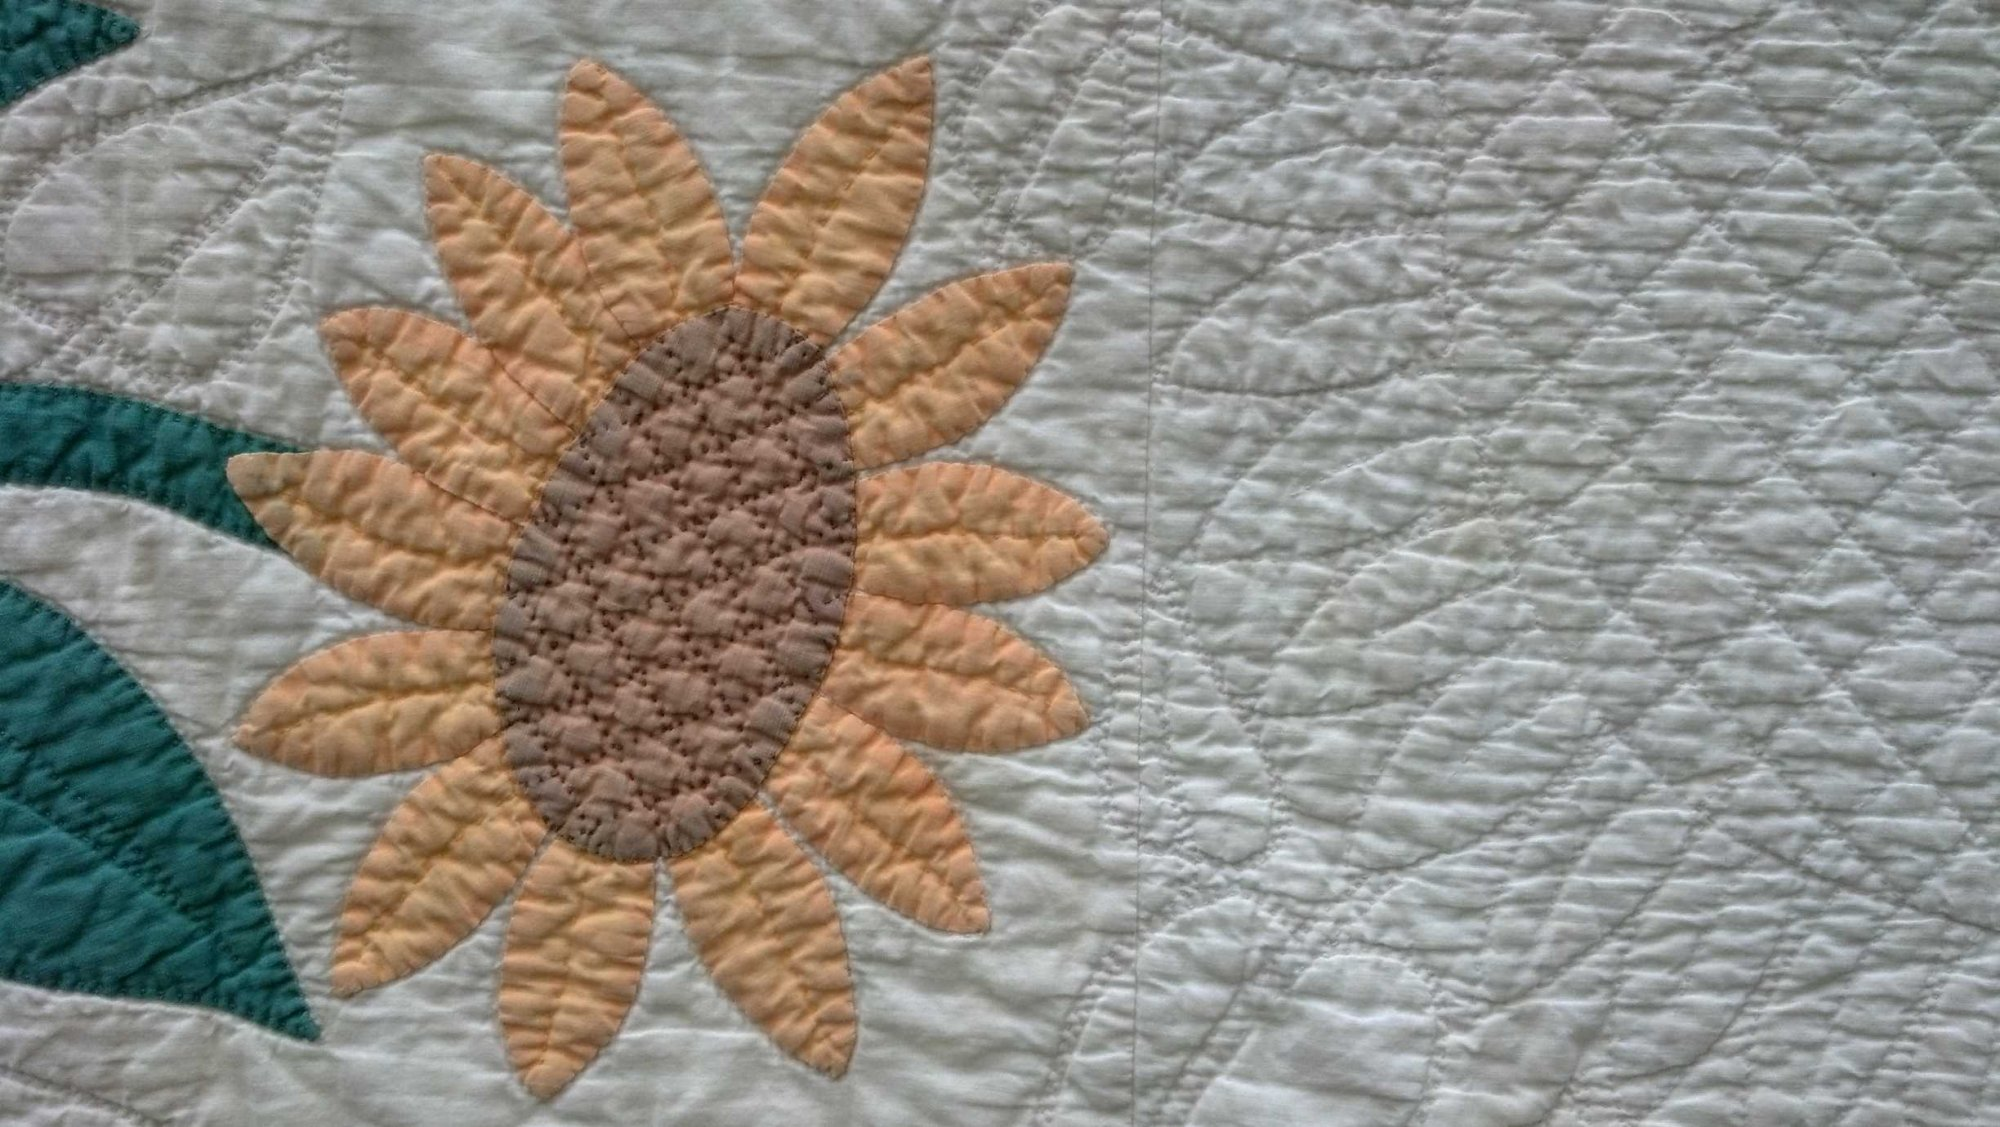 welcome to keepsake cottage fabrics your onestop quilt shop please come and visit our beautiful barn it is packed full of the finest quilting cottons